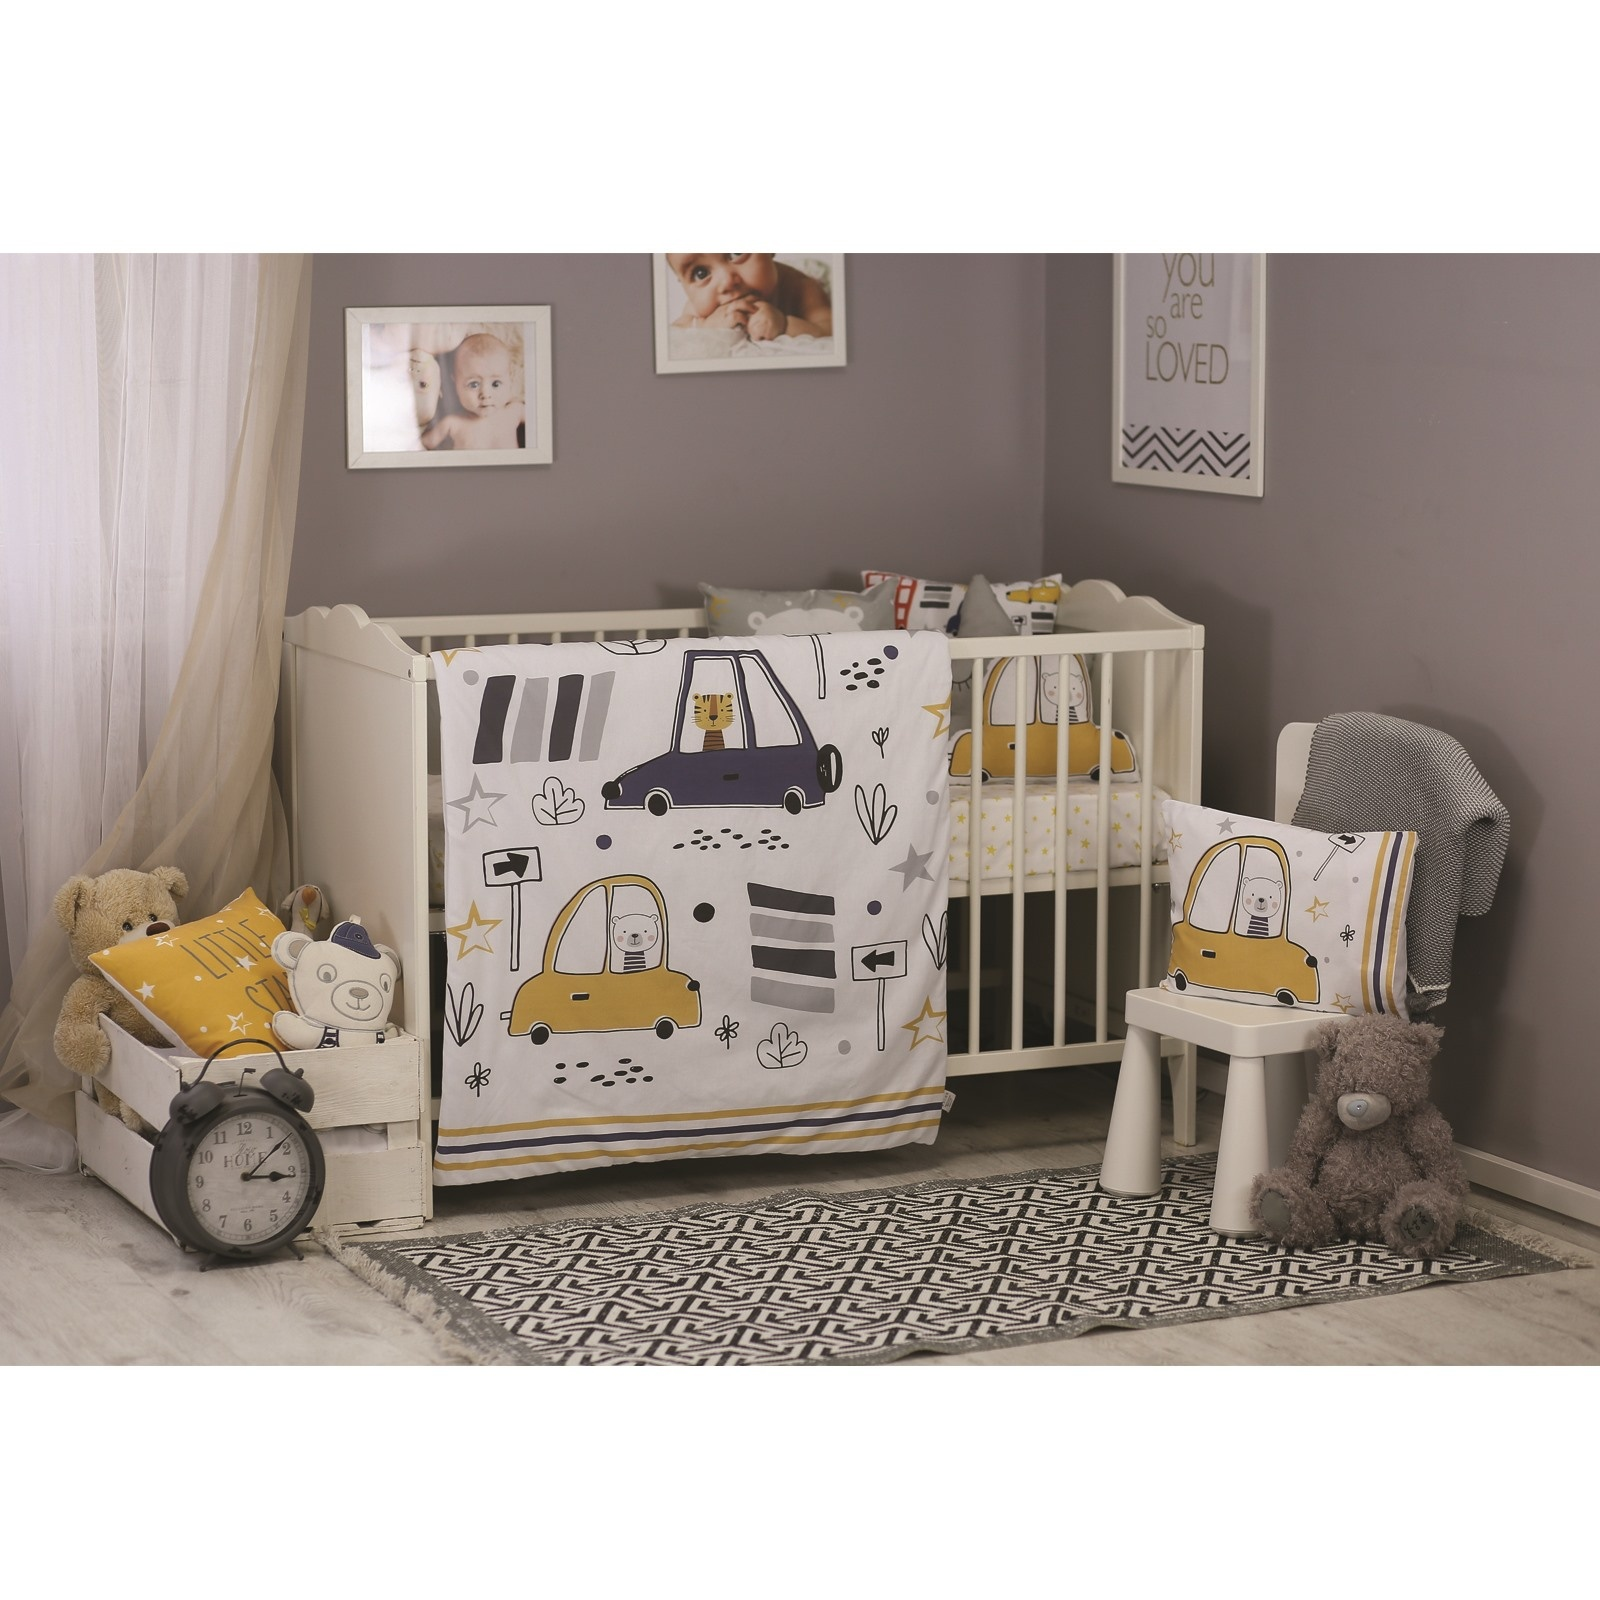 Ebebek Apolena Baby Cars Bed Filled Duvet Cover 80x100 Cm